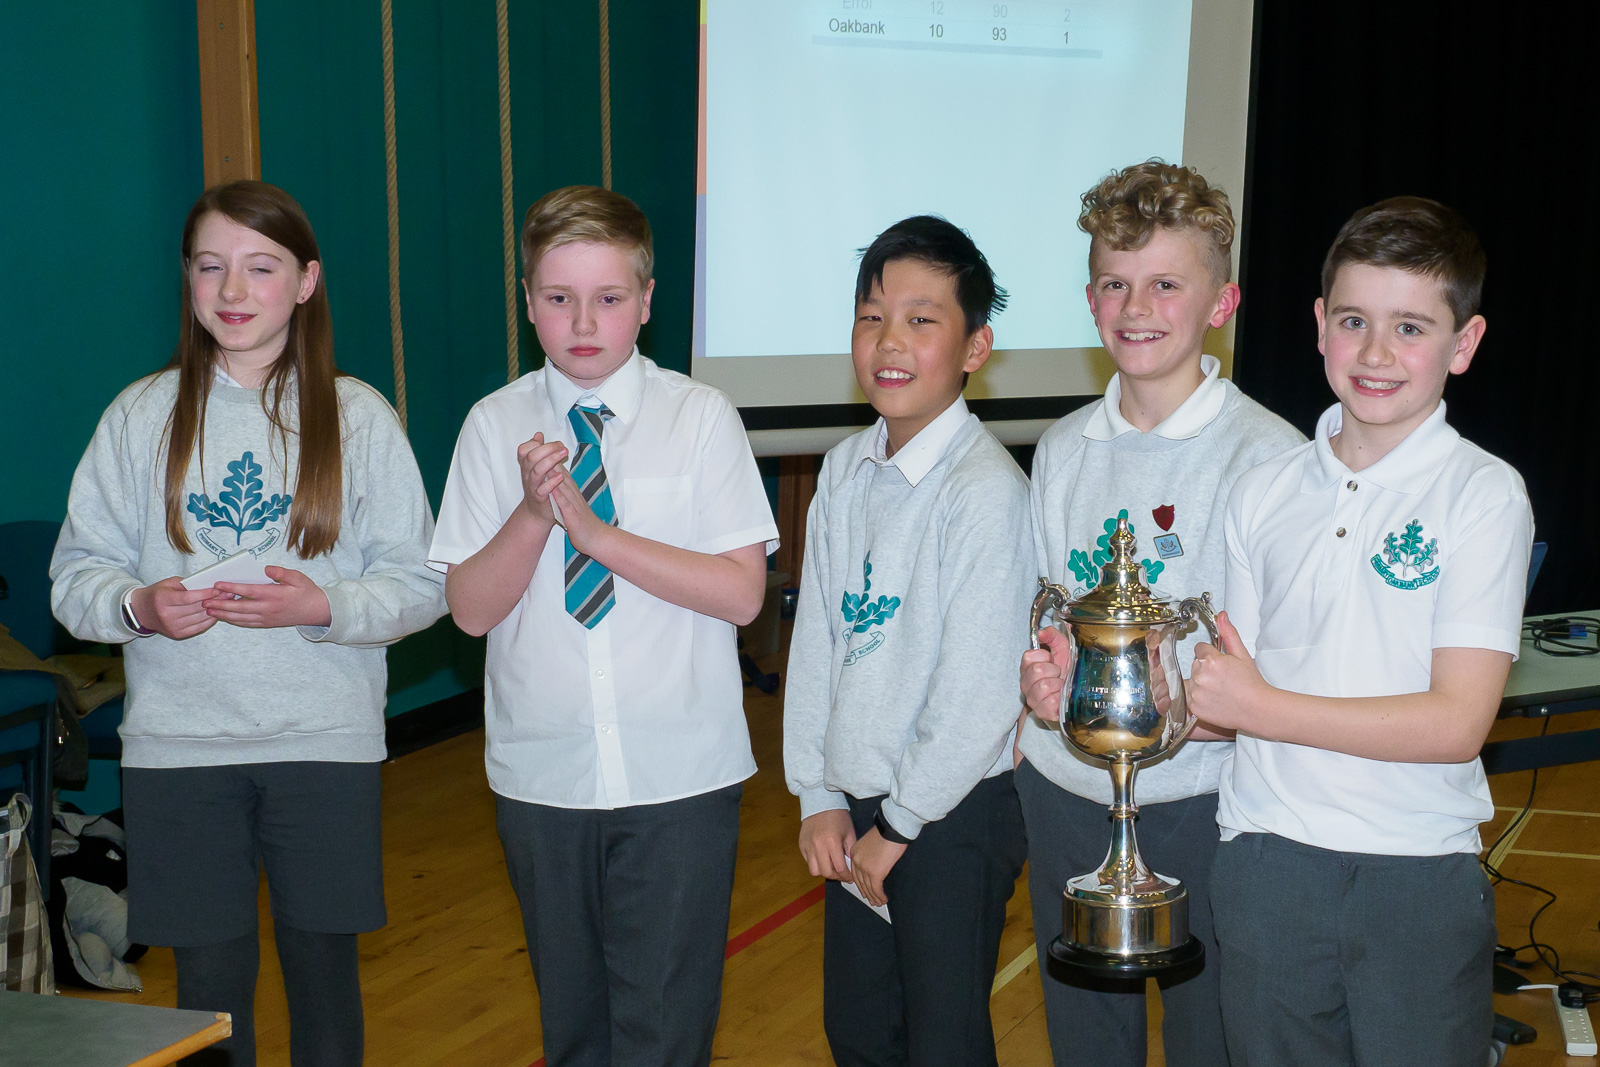 Five school pupils holding a prize cup